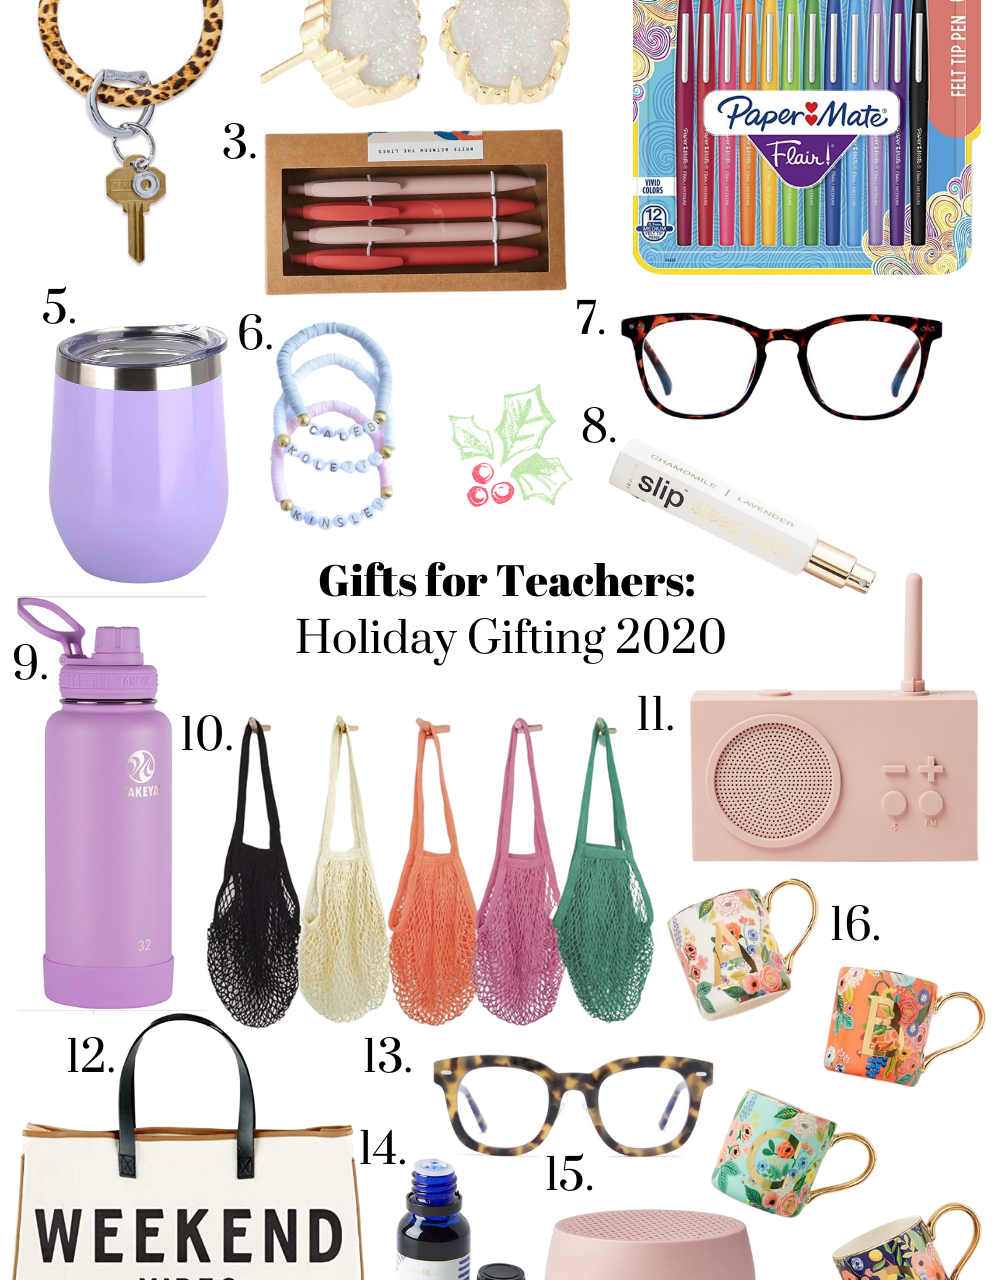 Gifts for Teachers: Holiday 2020 Gift Guide